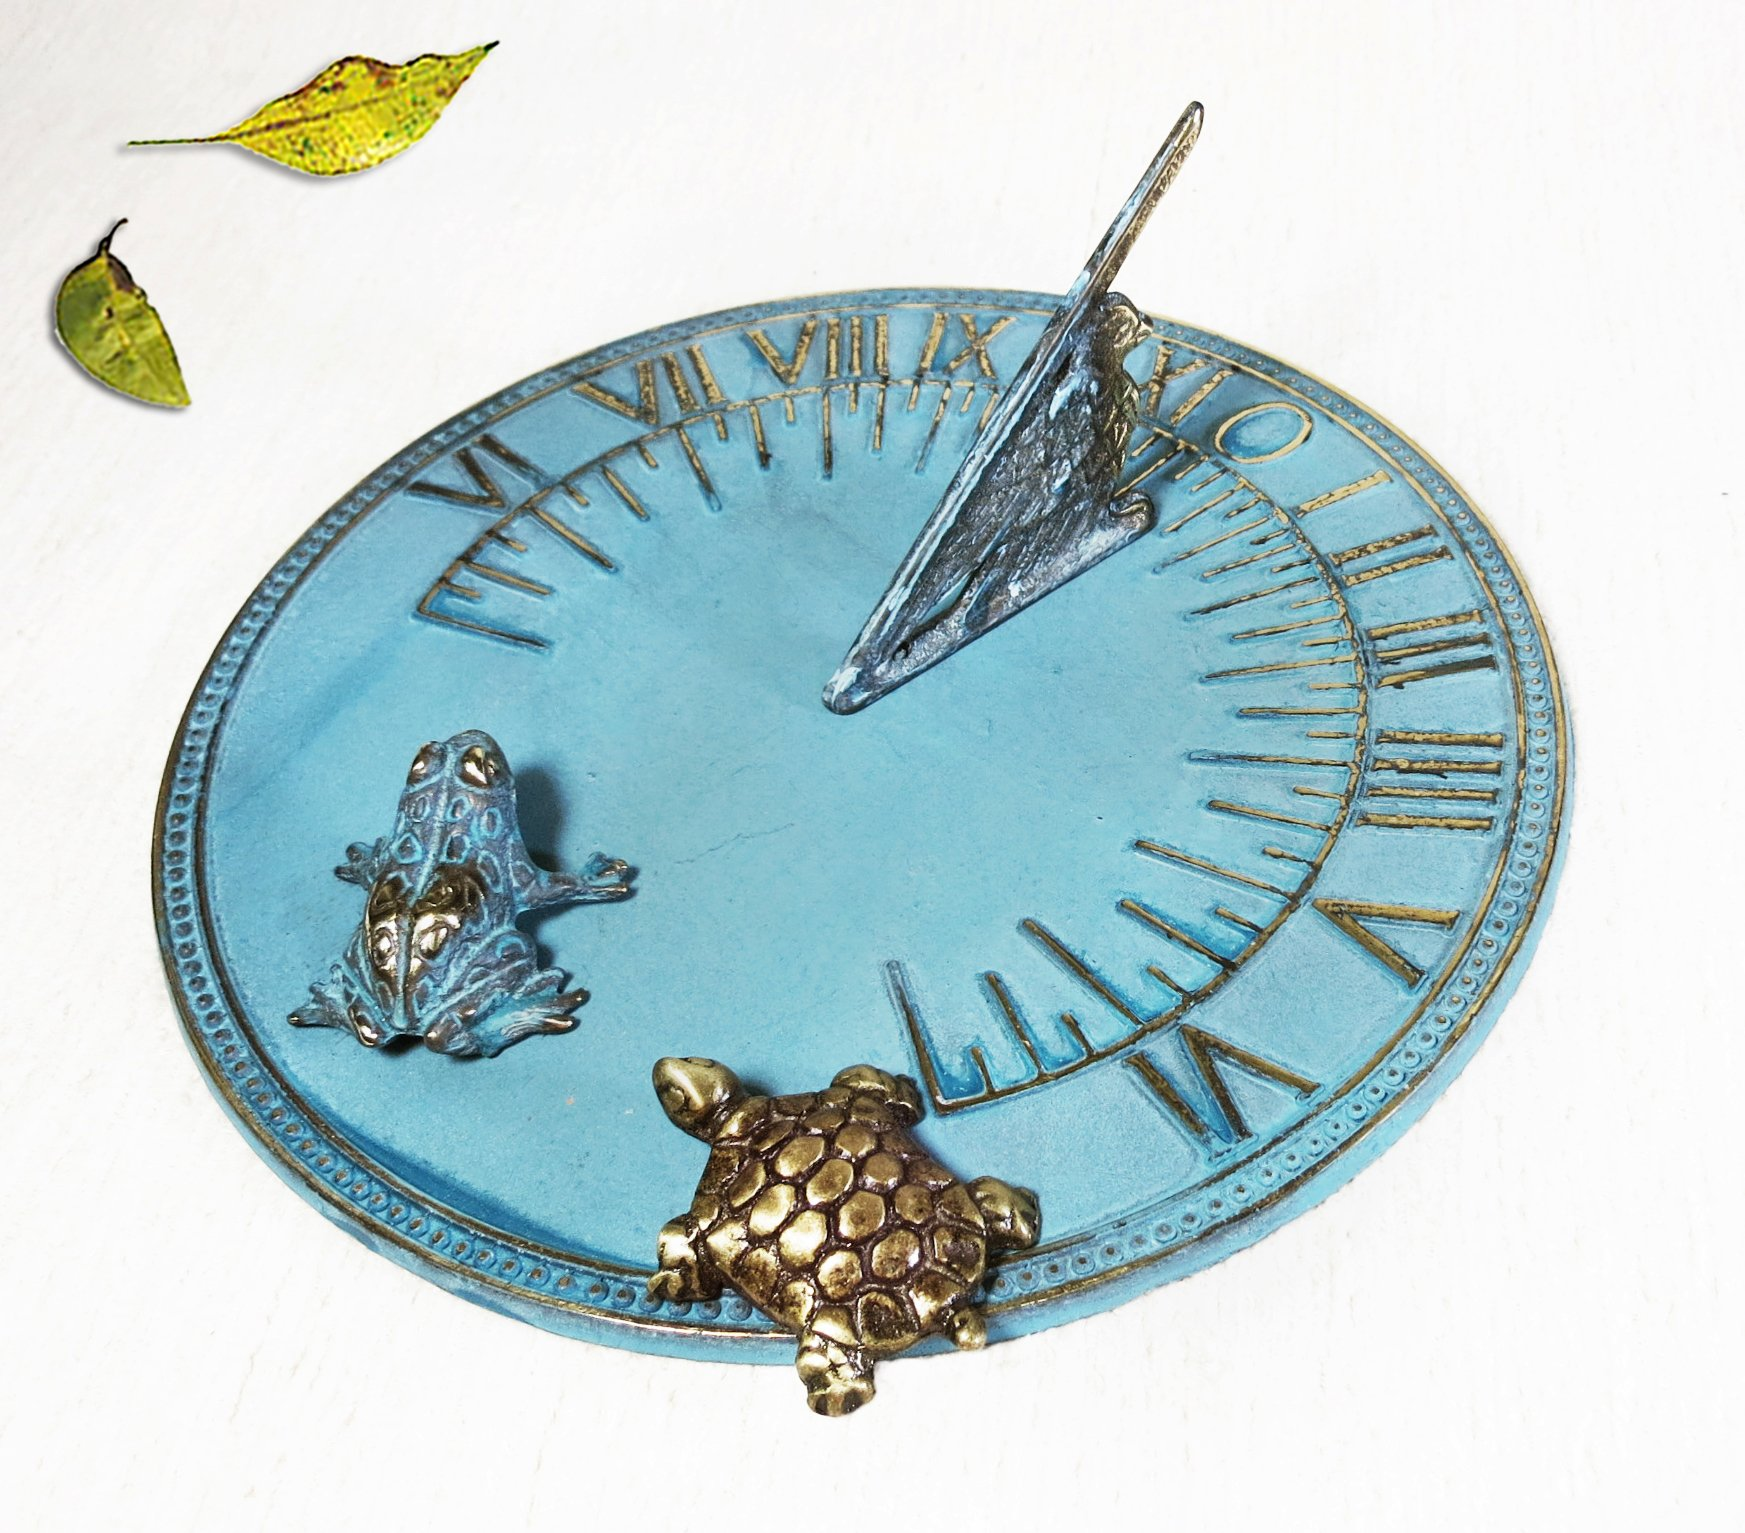 Decorative Brass Sundial 8'' inches wide - with 1 Little Frog & 1 Little Turtle